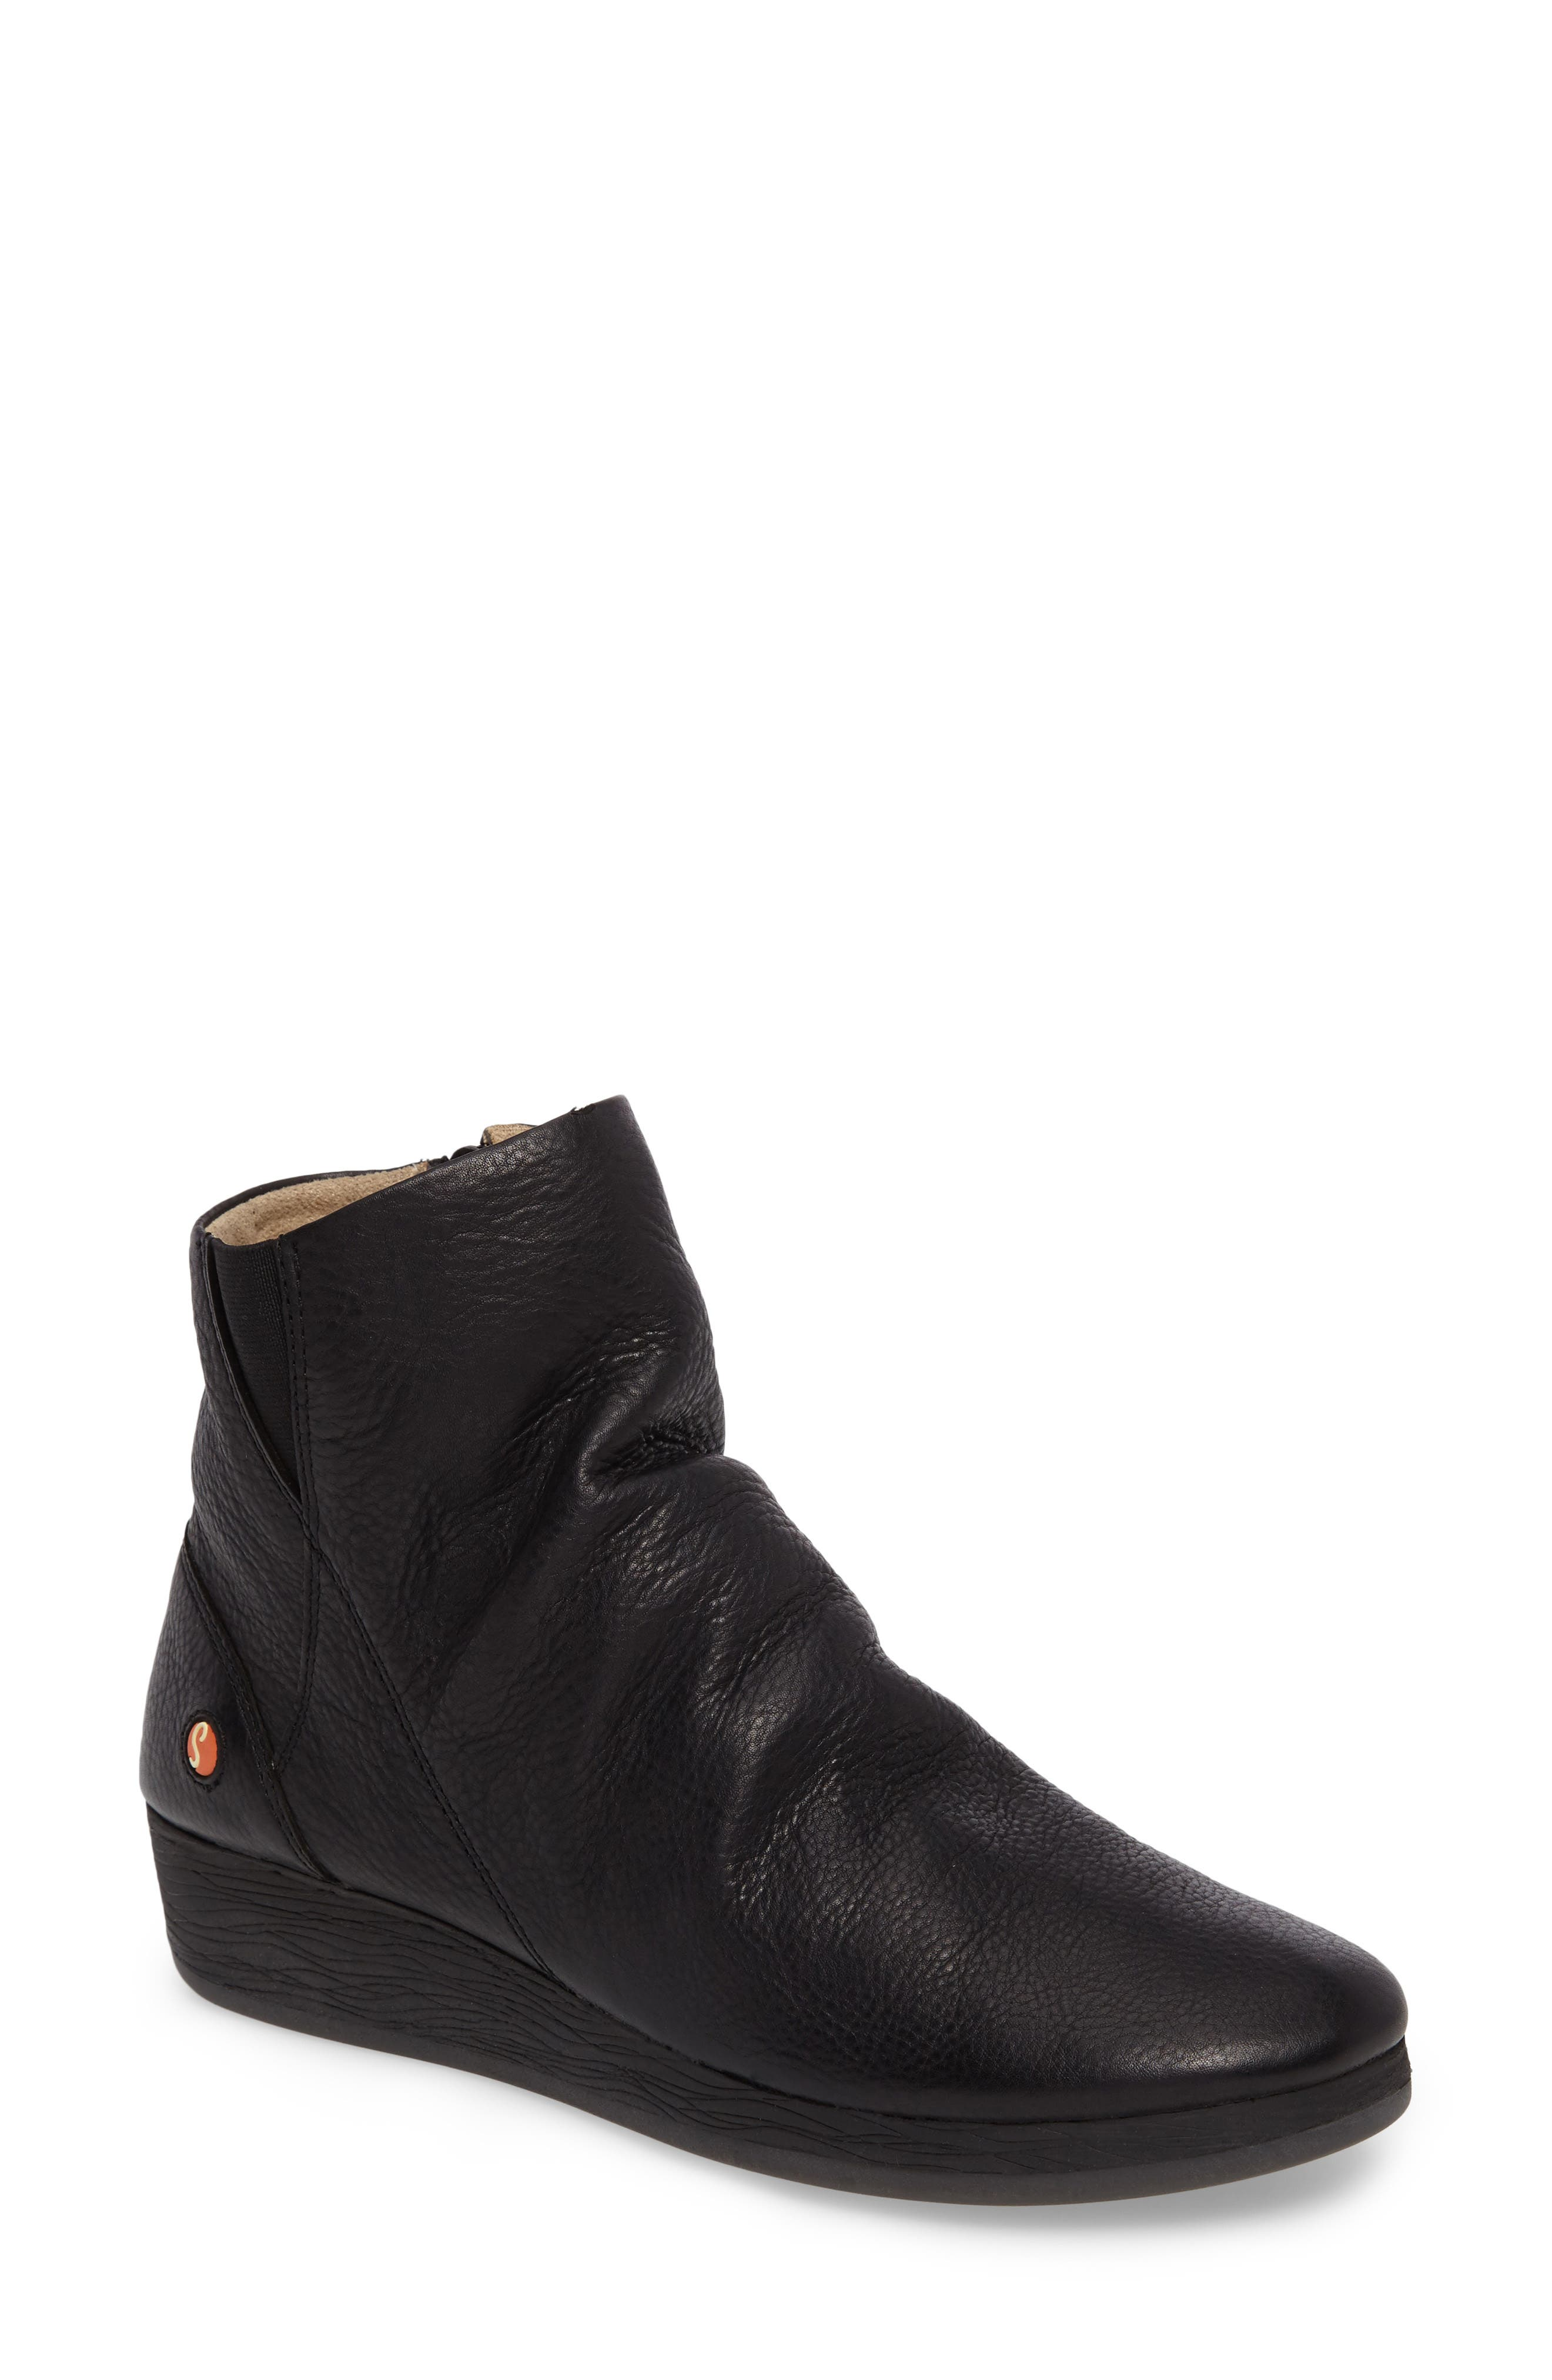 Ayo Low Wedge Bootie,                             Main thumbnail 1, color,                             001